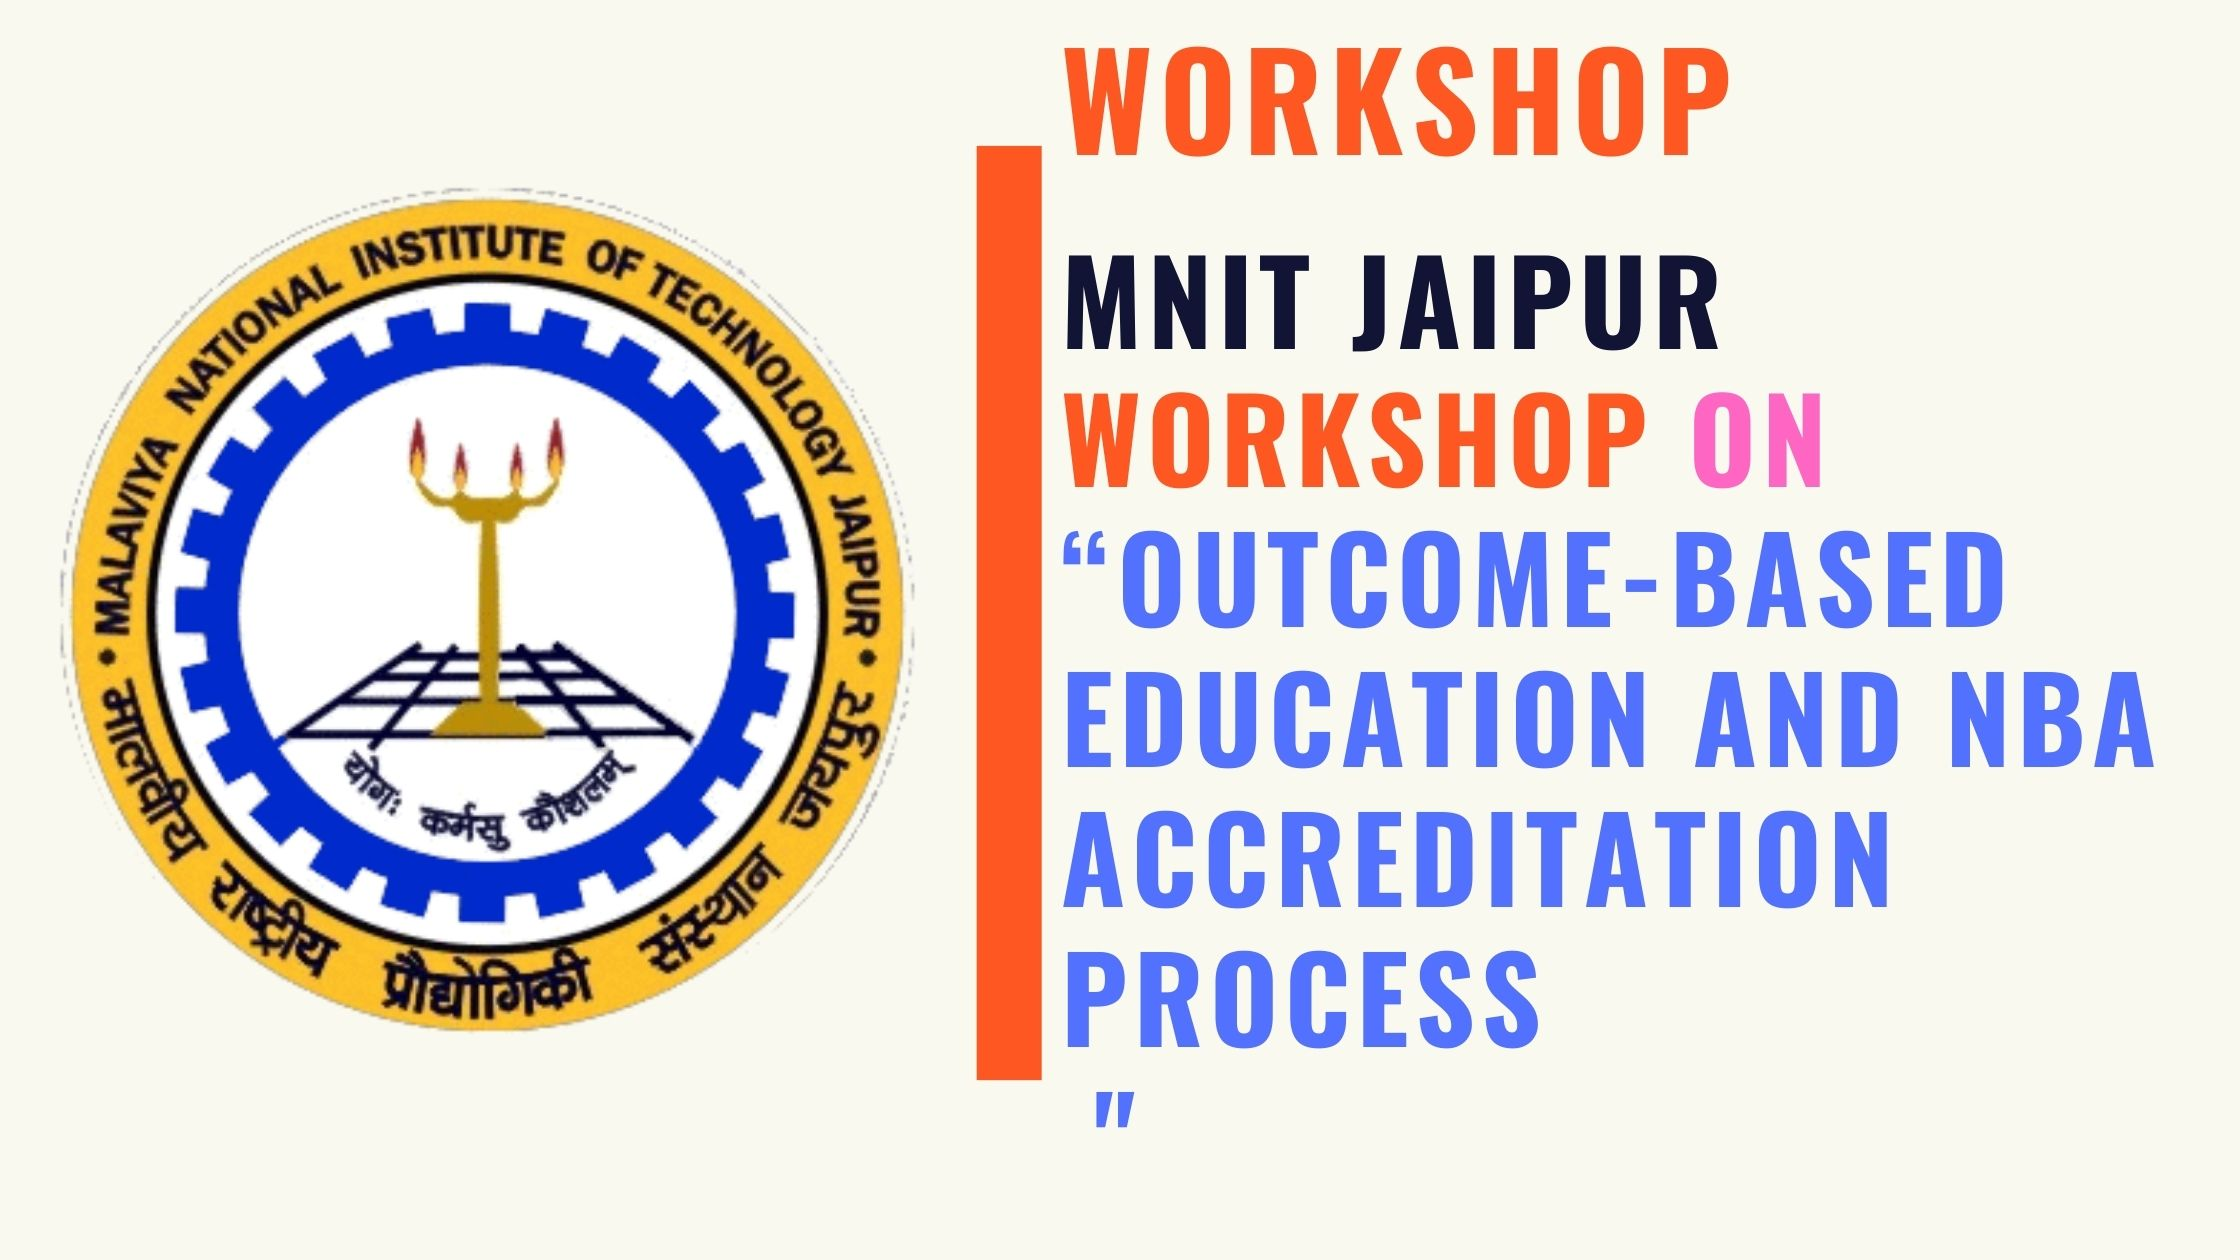 MNIT Jaipur Online workshop Outcome-Based Education and NBA Accreditation Process